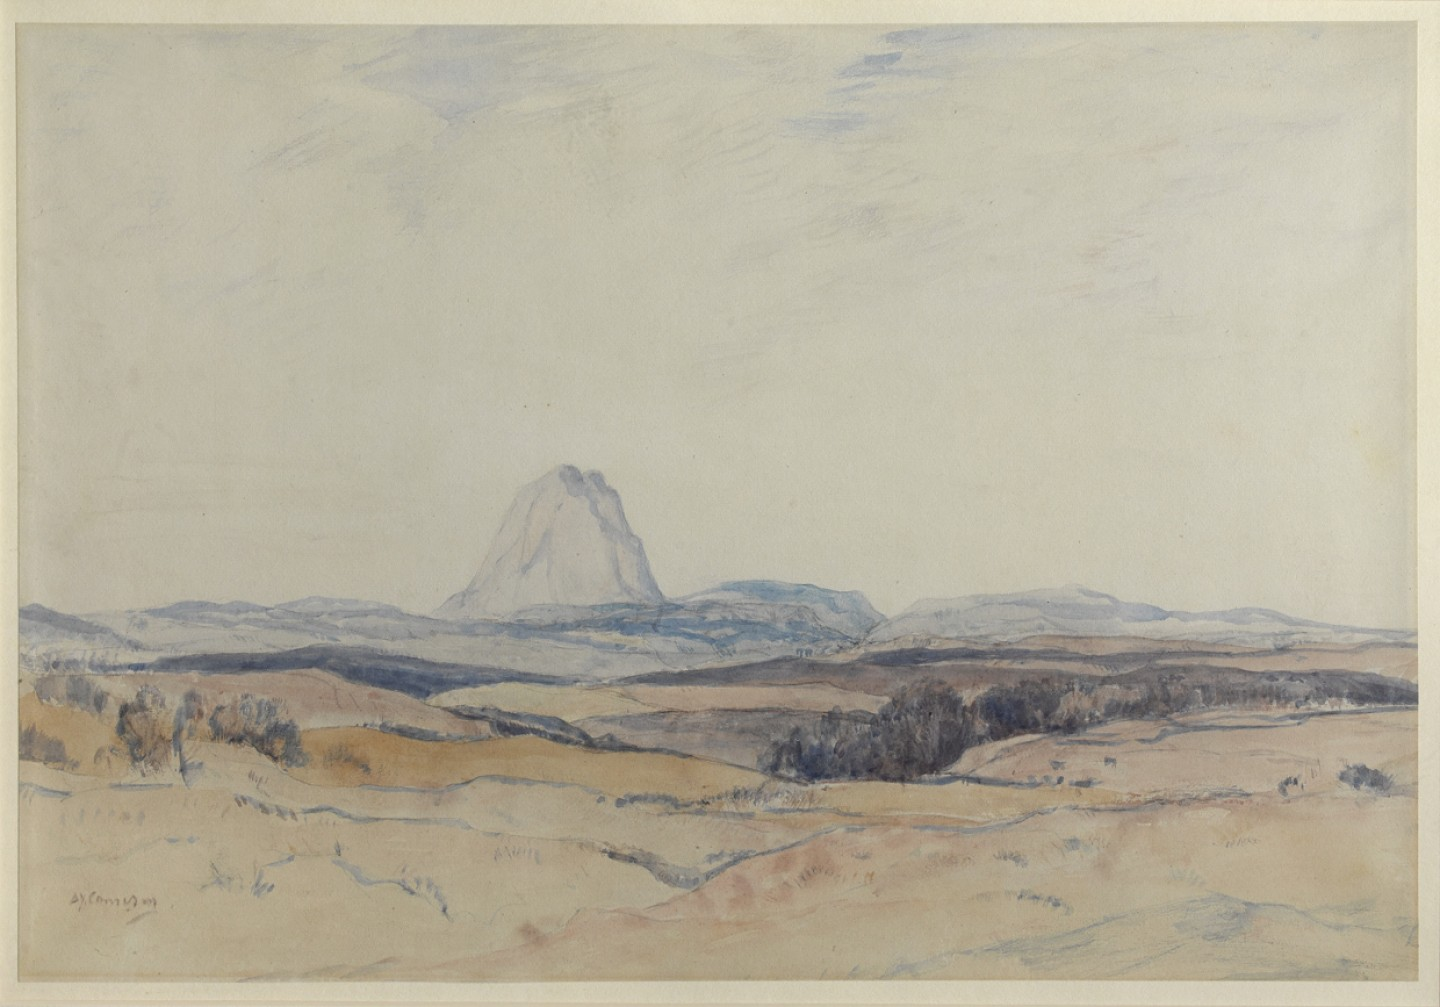 View of Suilven, Sutherland